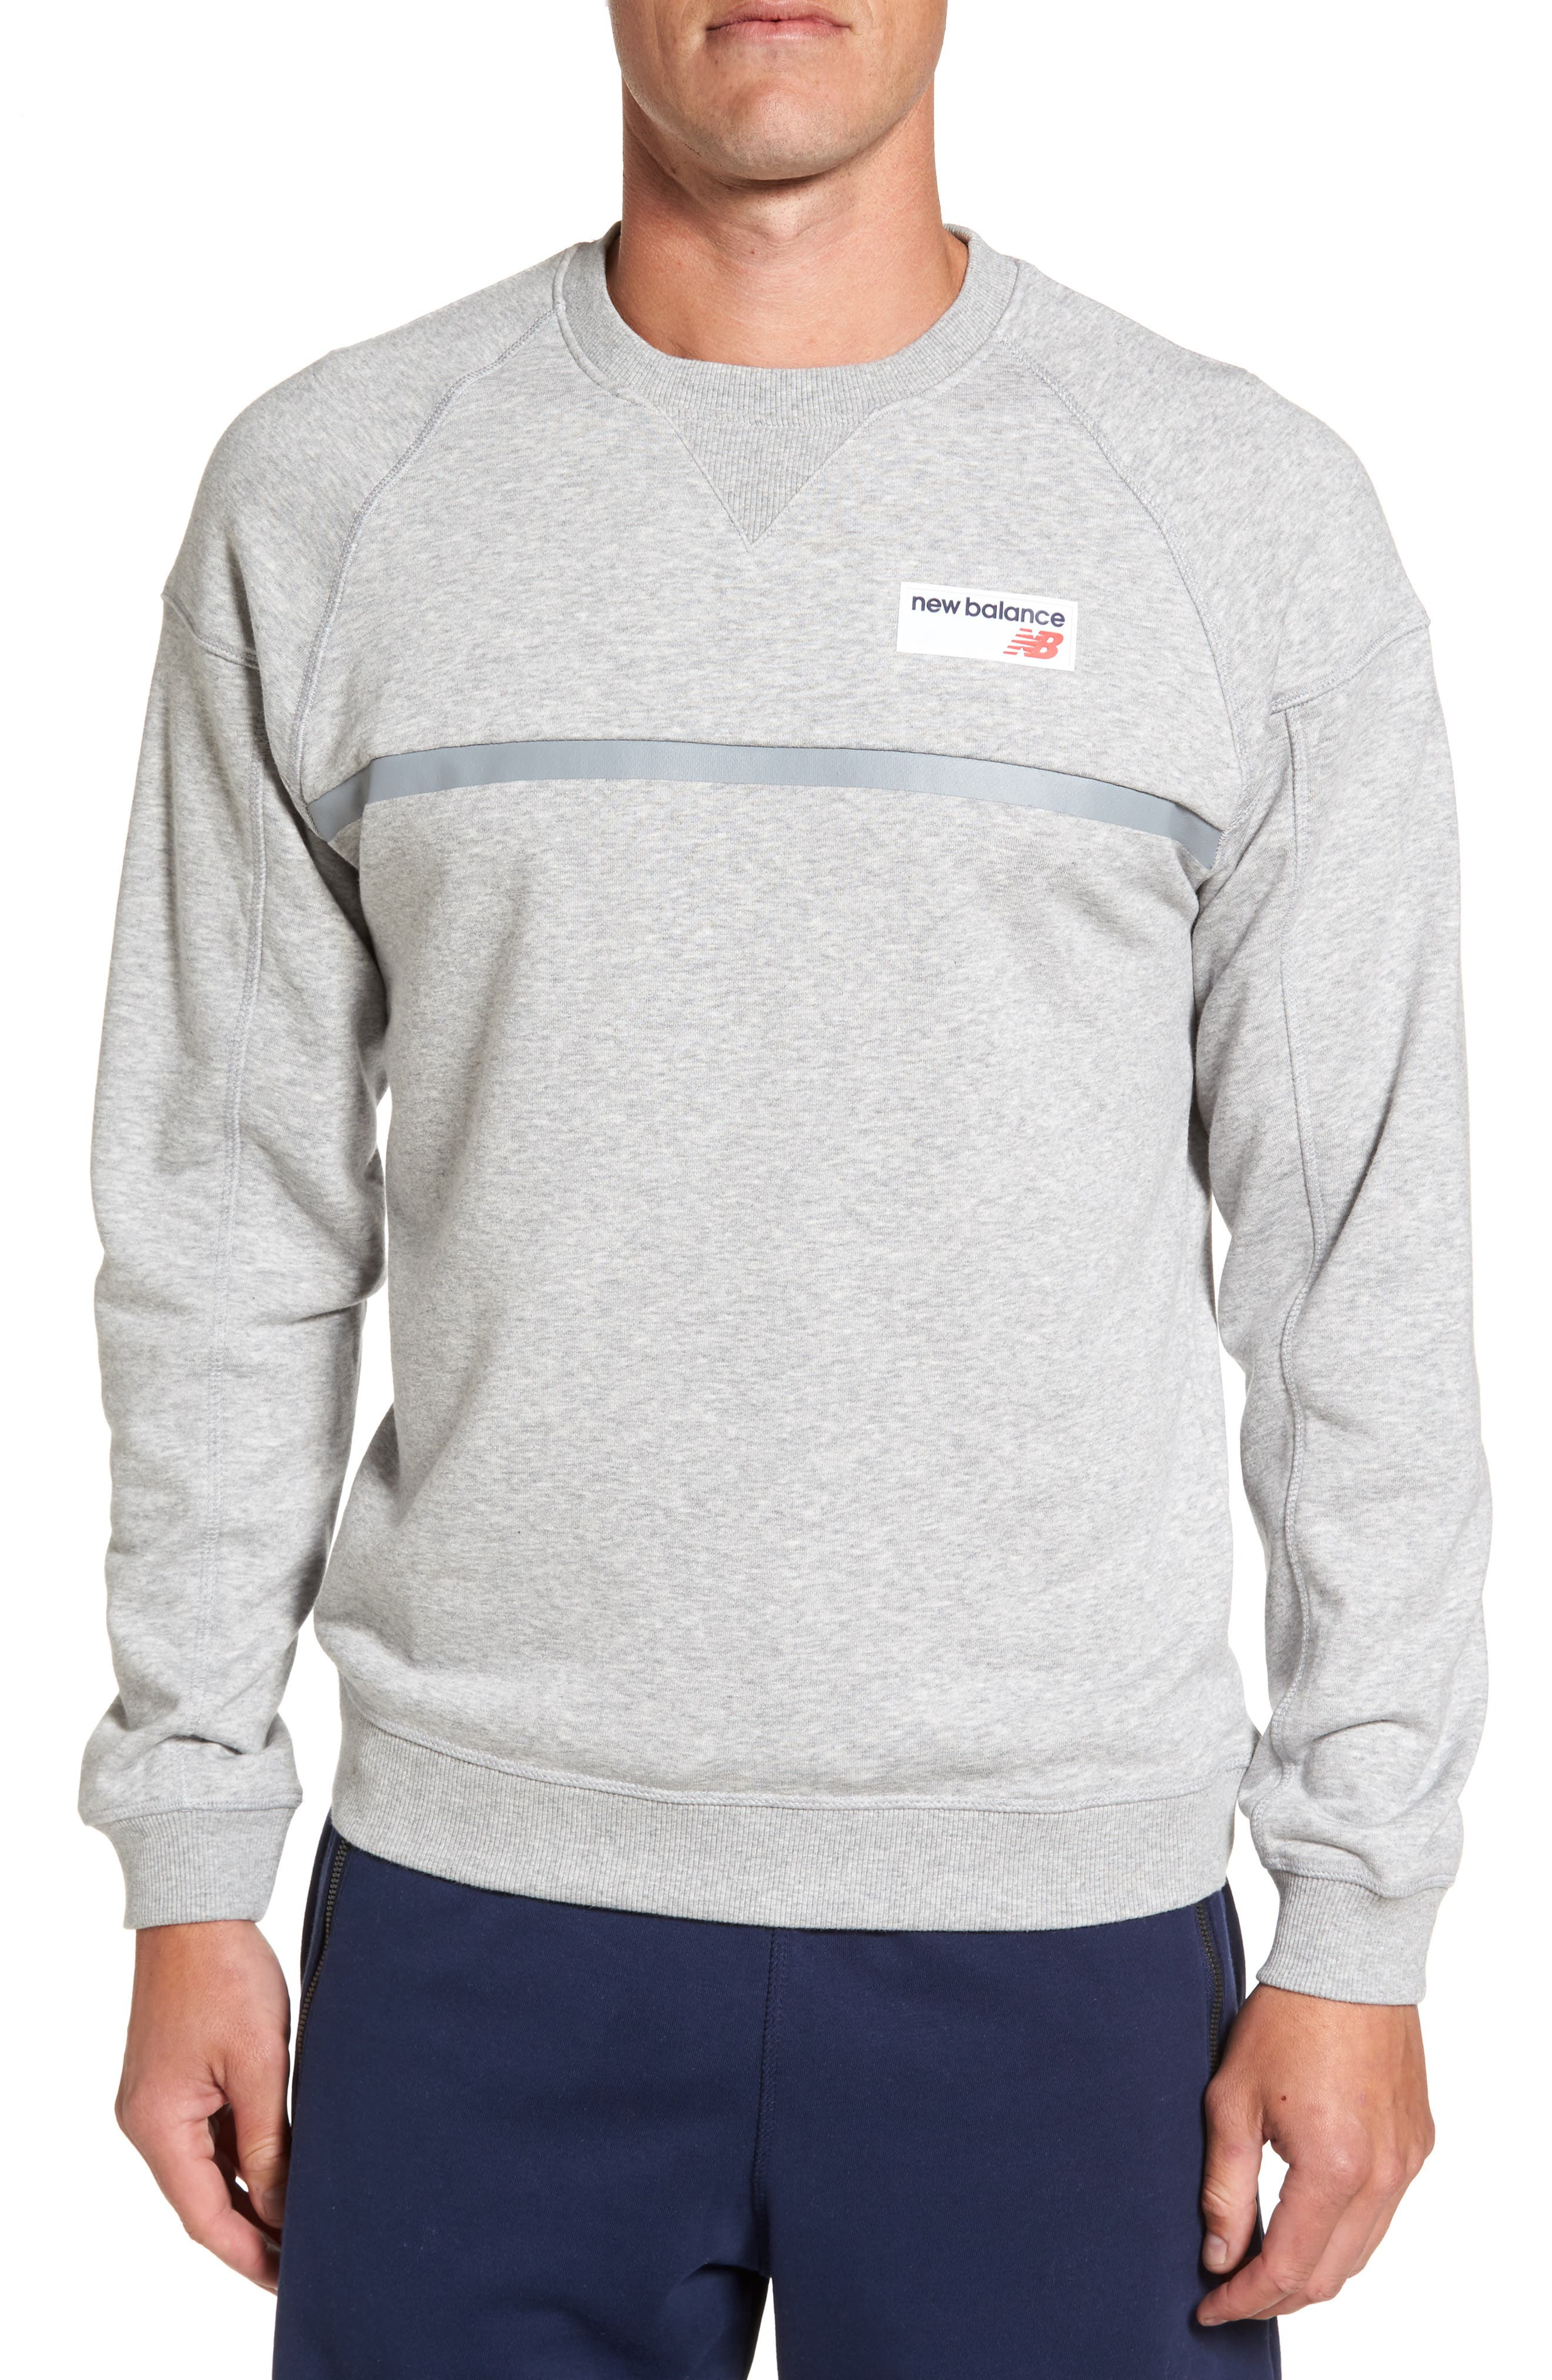 New Balance Athletics Crewneck Sweatshirt